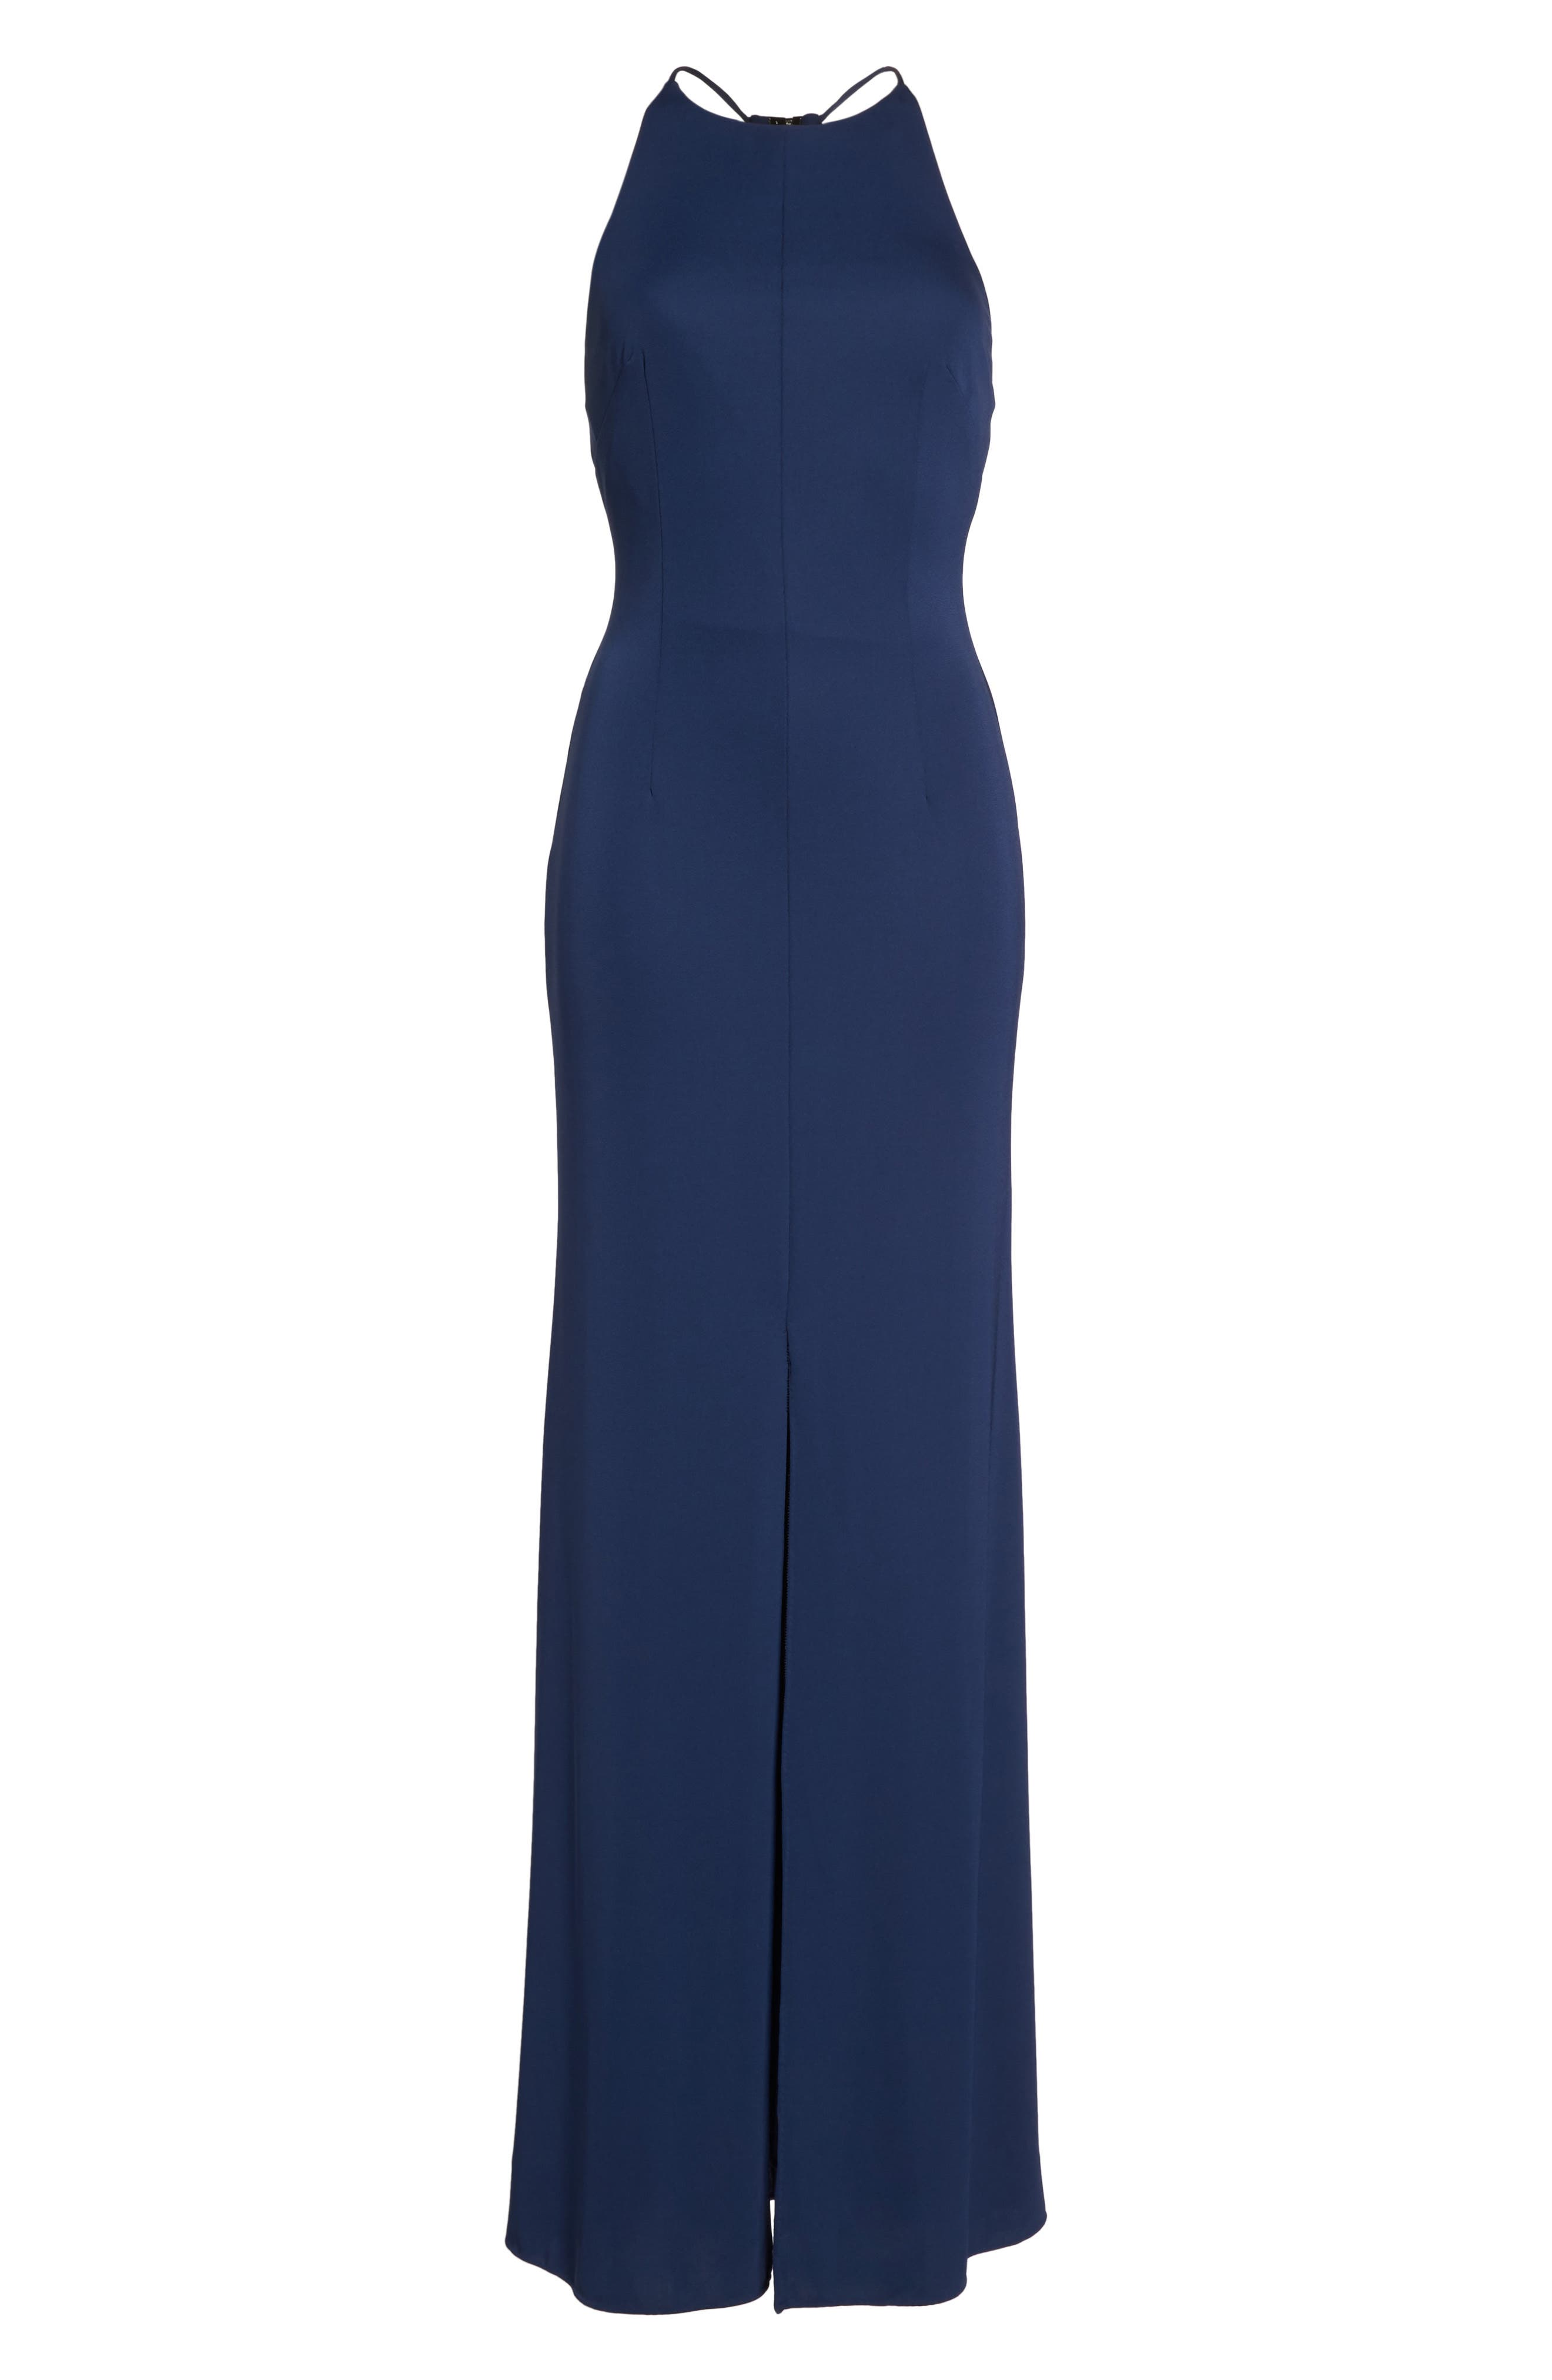 Victoria Sleeveless Gown,                             Alternate thumbnail 6, color,                             411